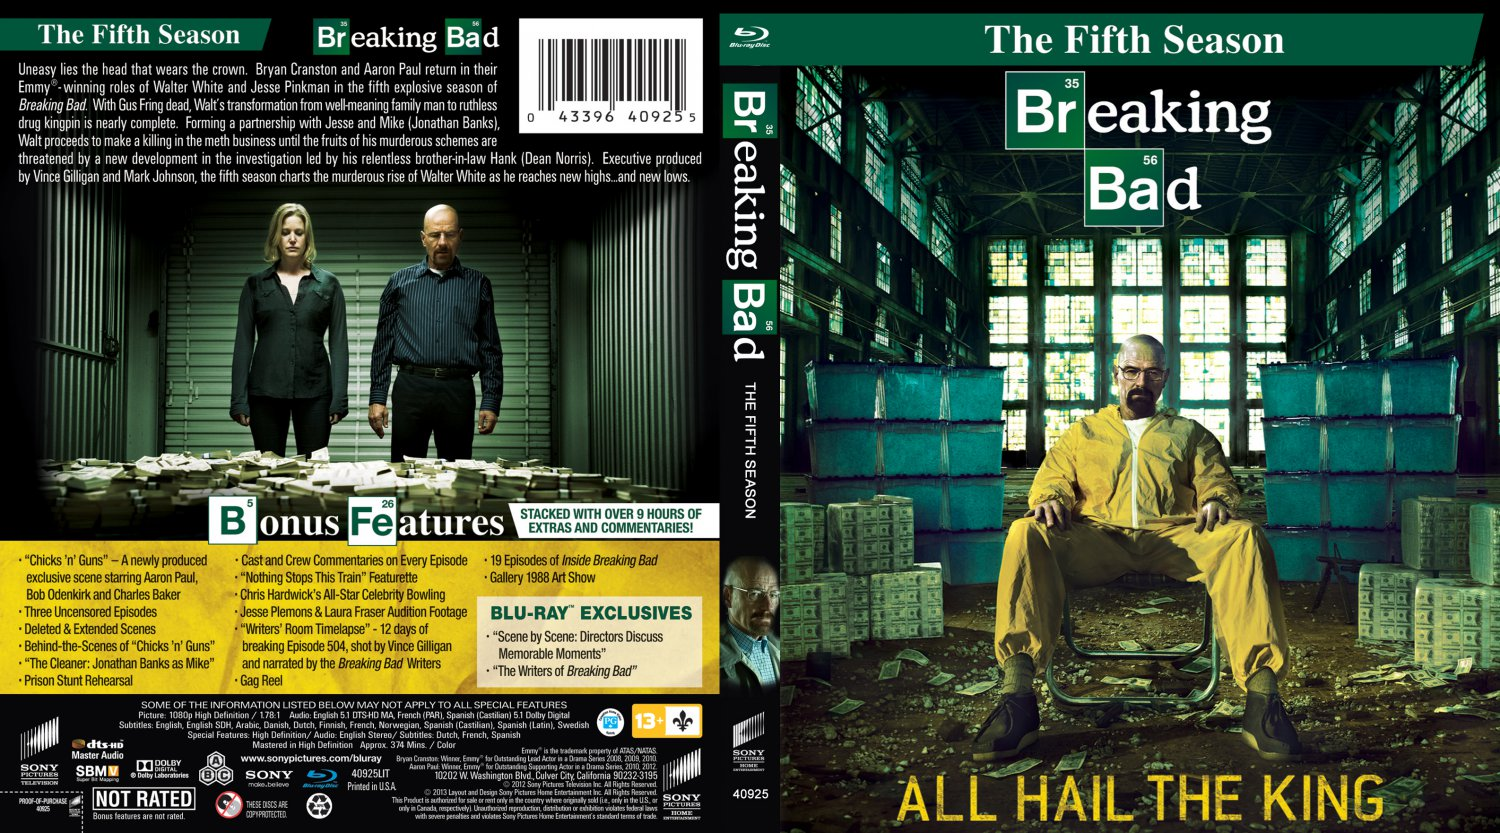 breaking bad season 5 tv bluray scanned covers